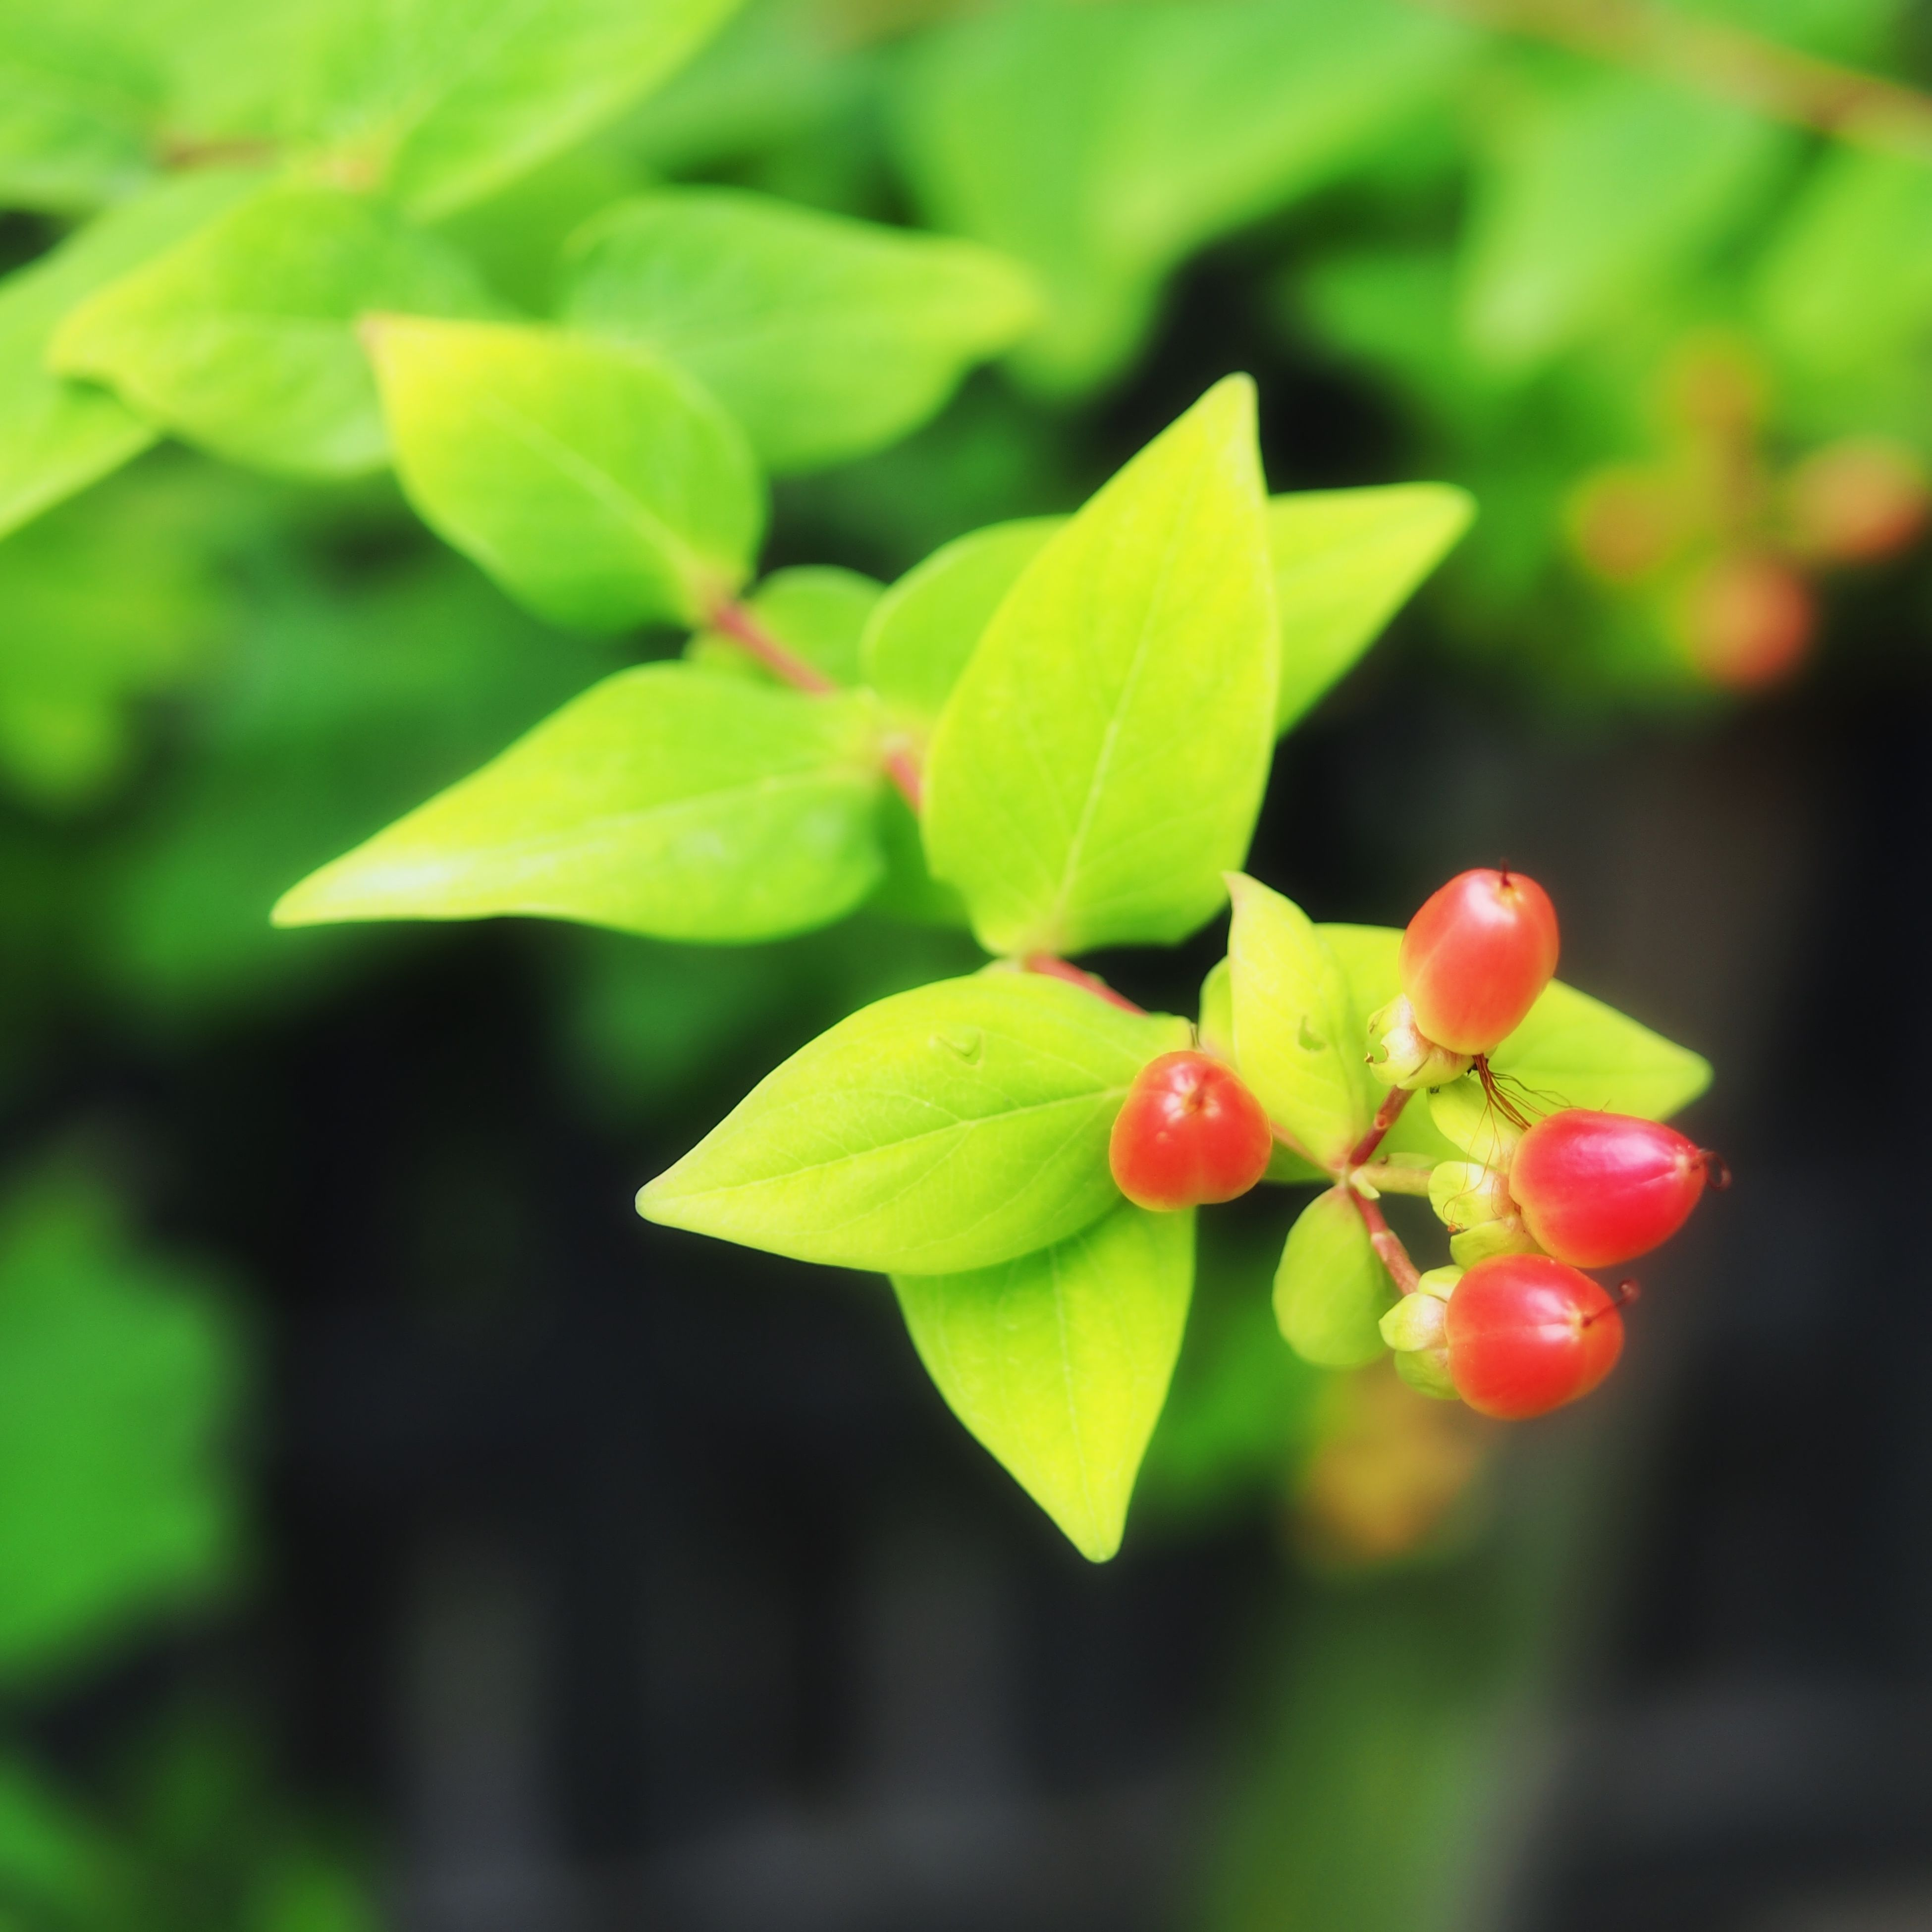 growth, leaf, focus on foreground, close-up, green color, plant, nature, freshness, beauty in nature, selective focus, red, day, outdoors, flower, no people, fragility, bud, branch, stem, growing